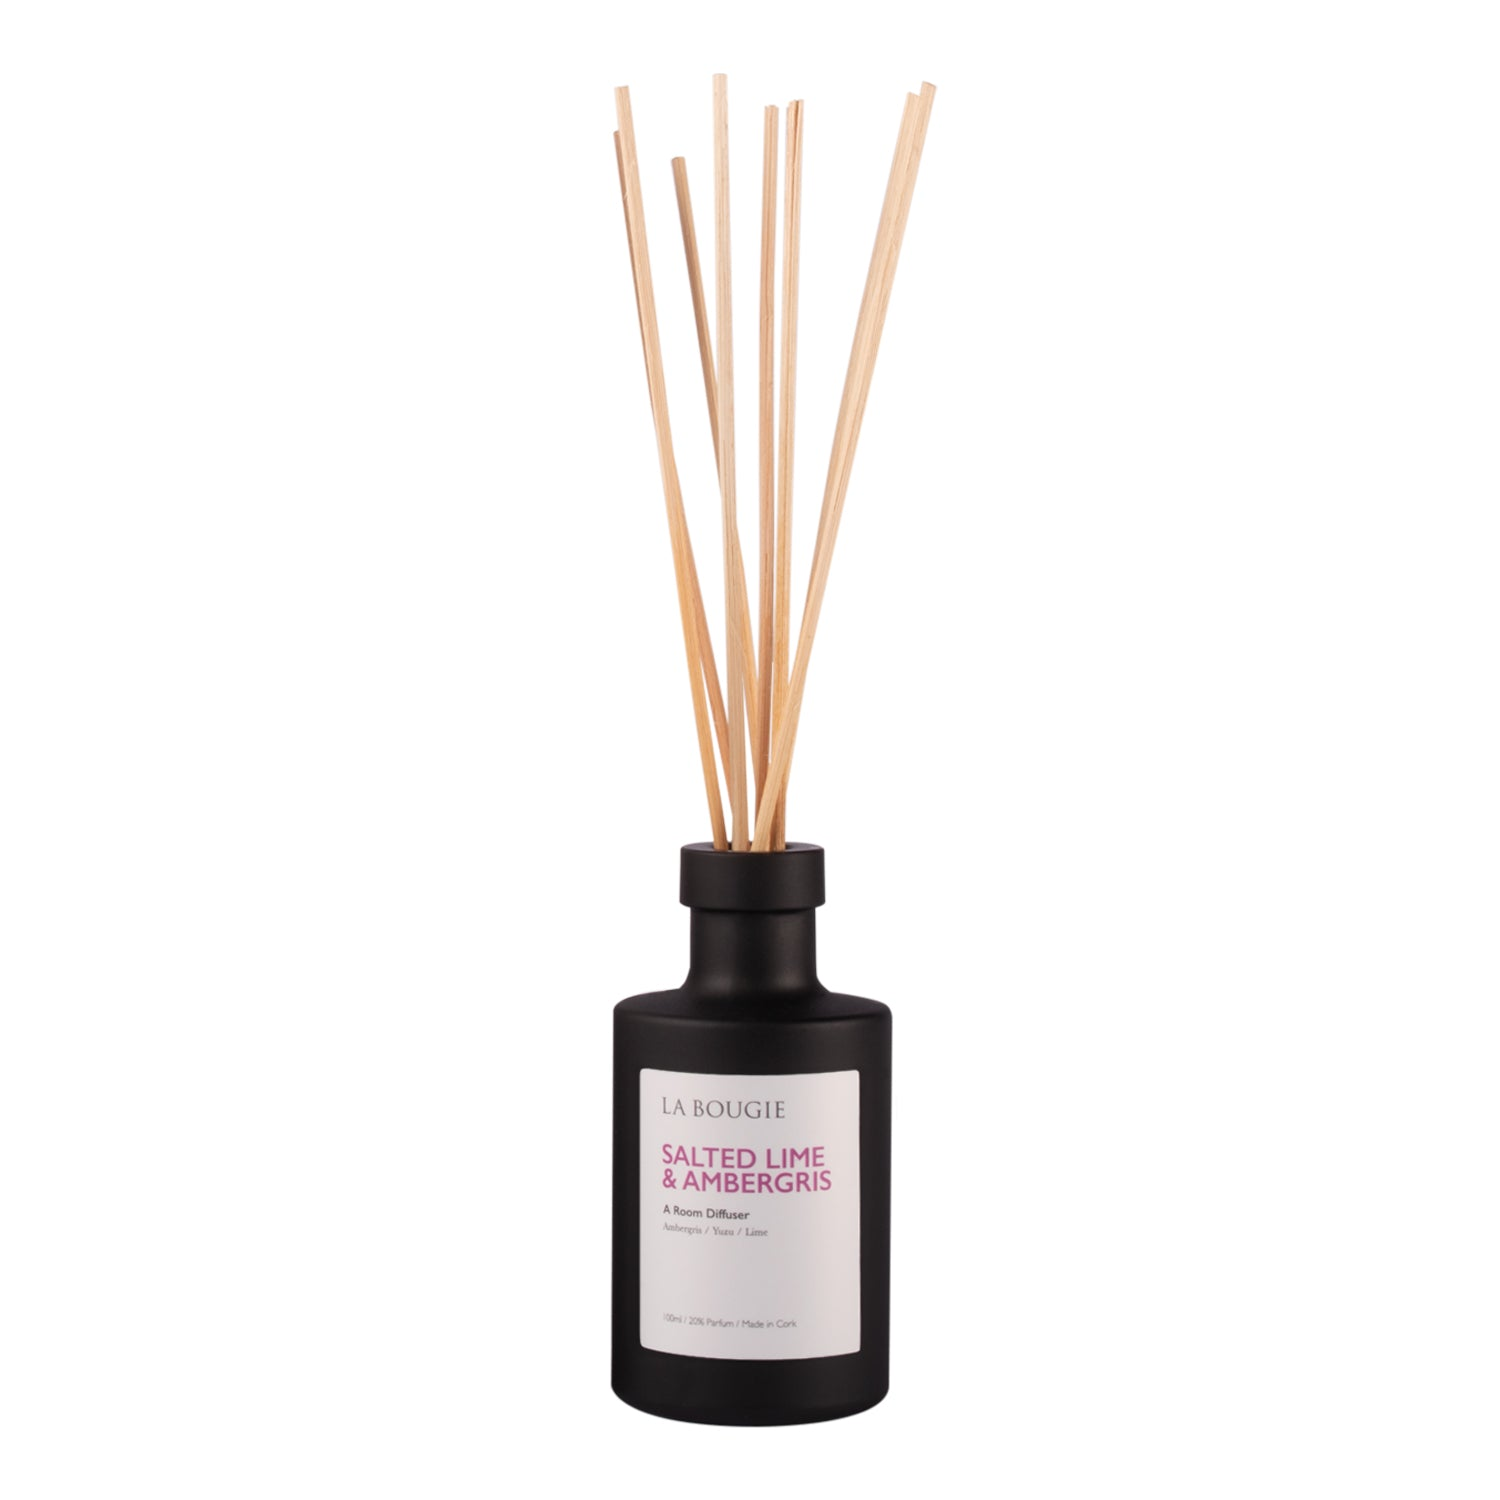 Salted Lime and Ambergris Diffuser